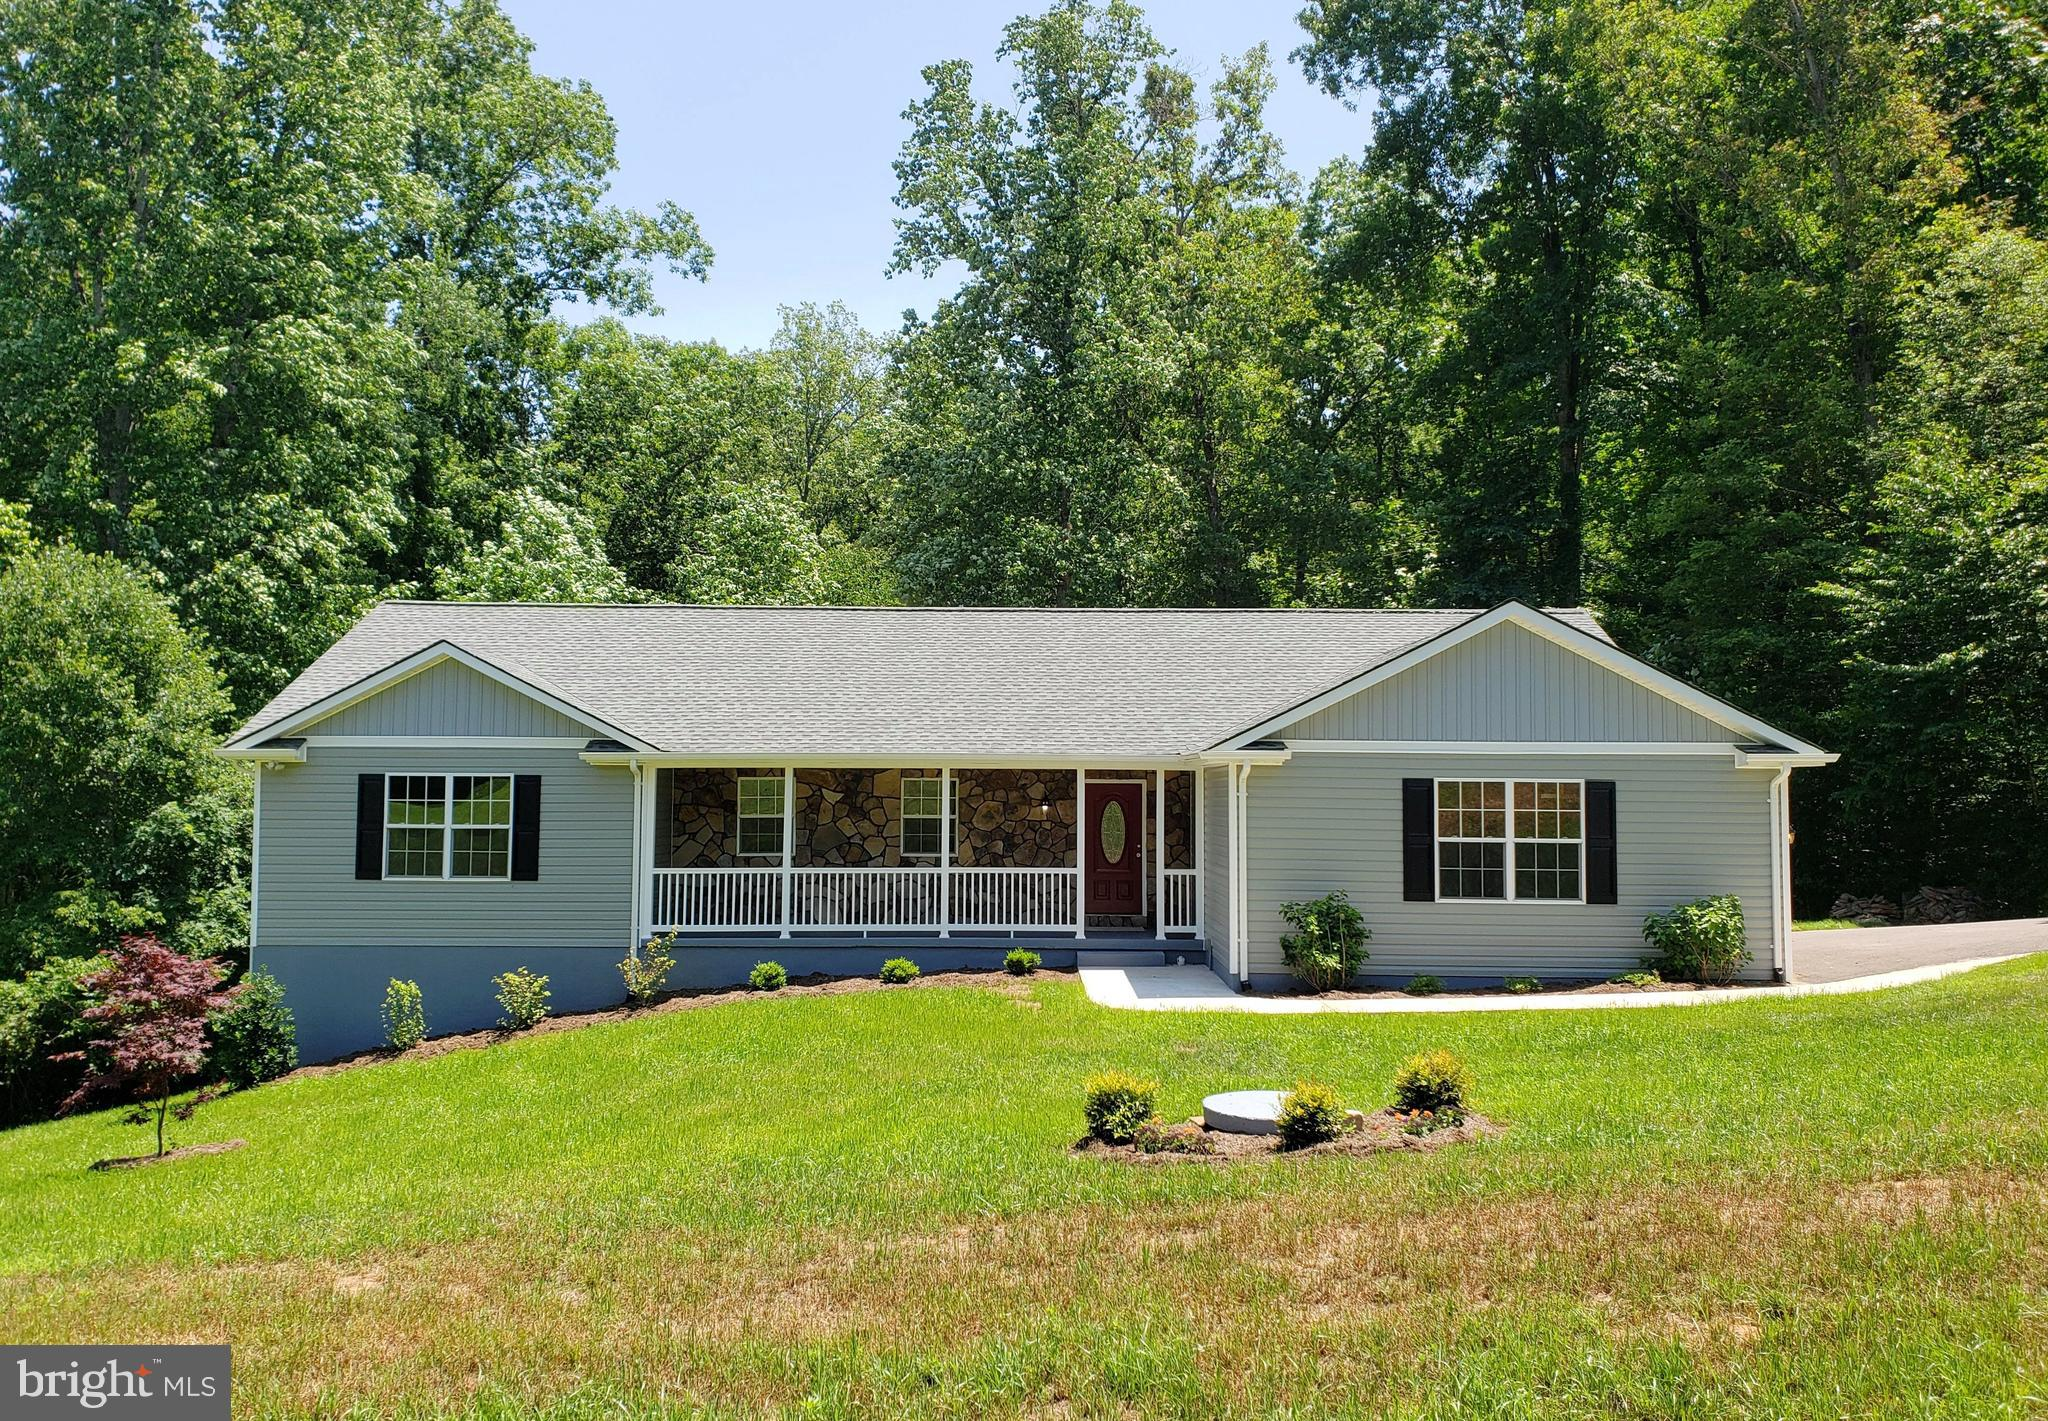 459 COVERED BRIDGE DRIVE, MADISON, VA 22727